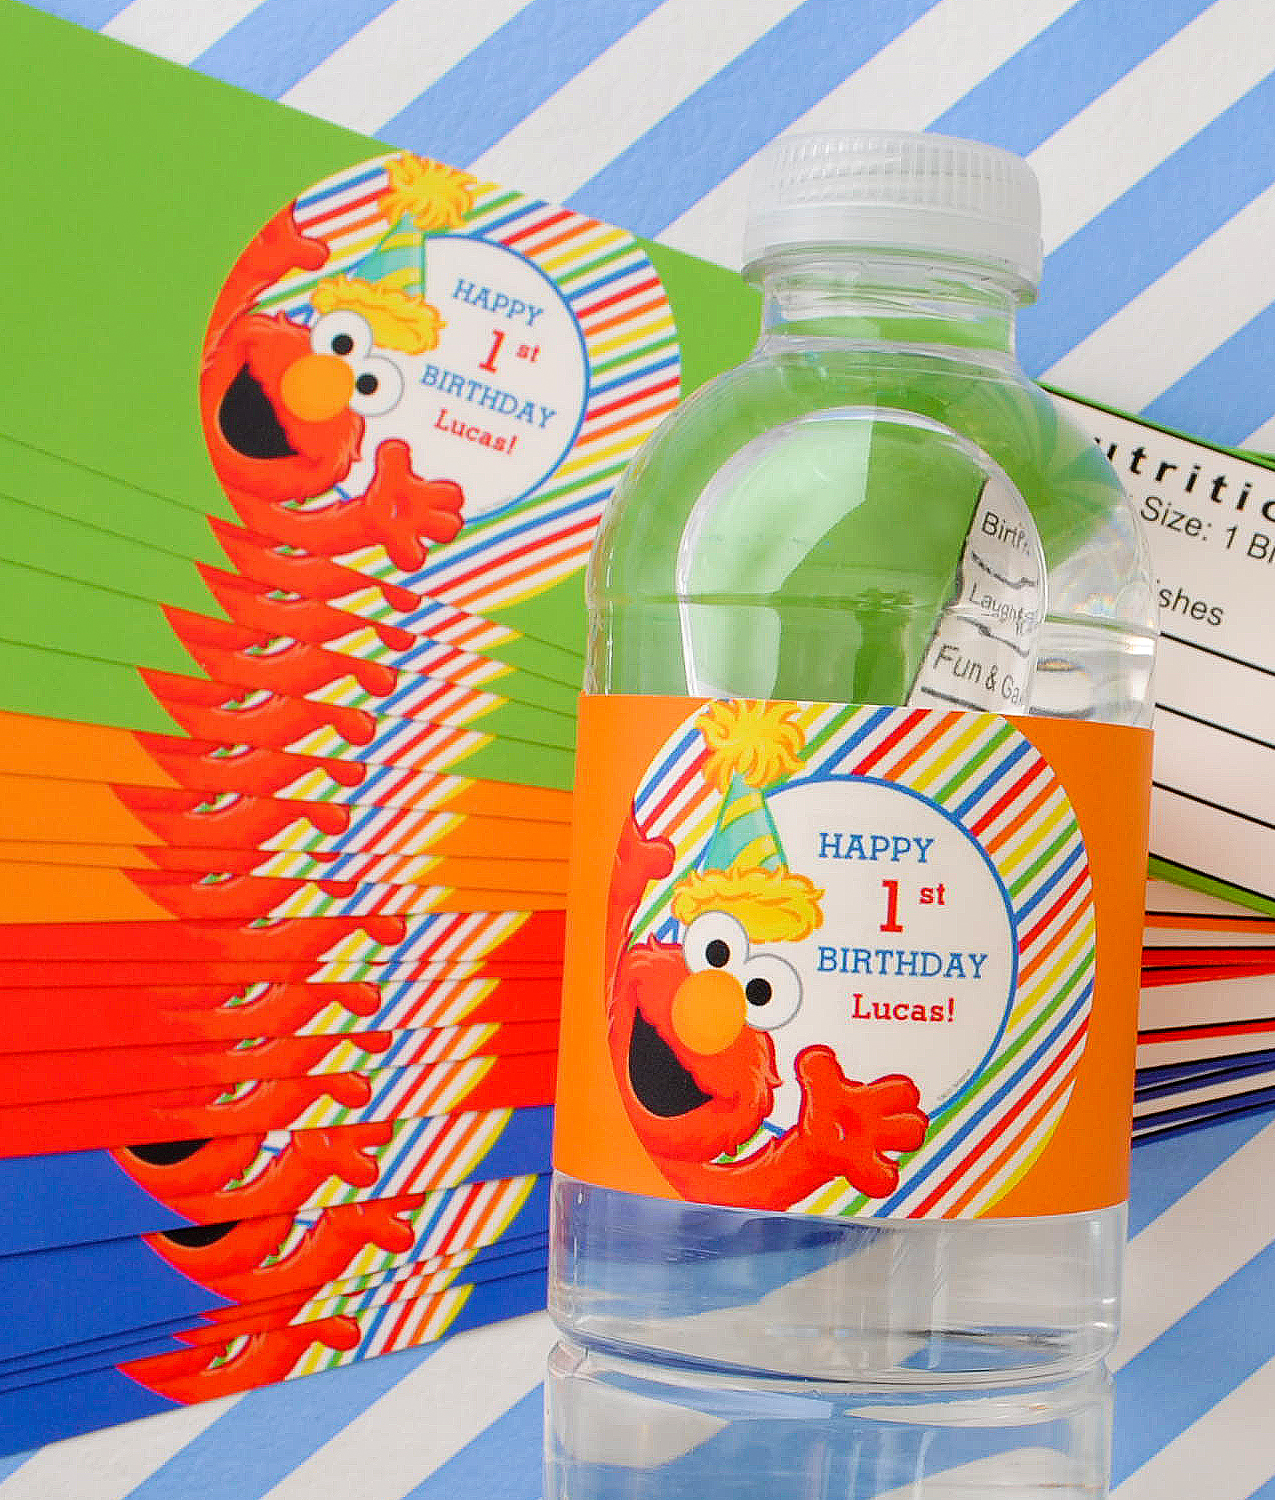 Elmo first birthday water bottle labels. These were created by a customer using the online design studio.